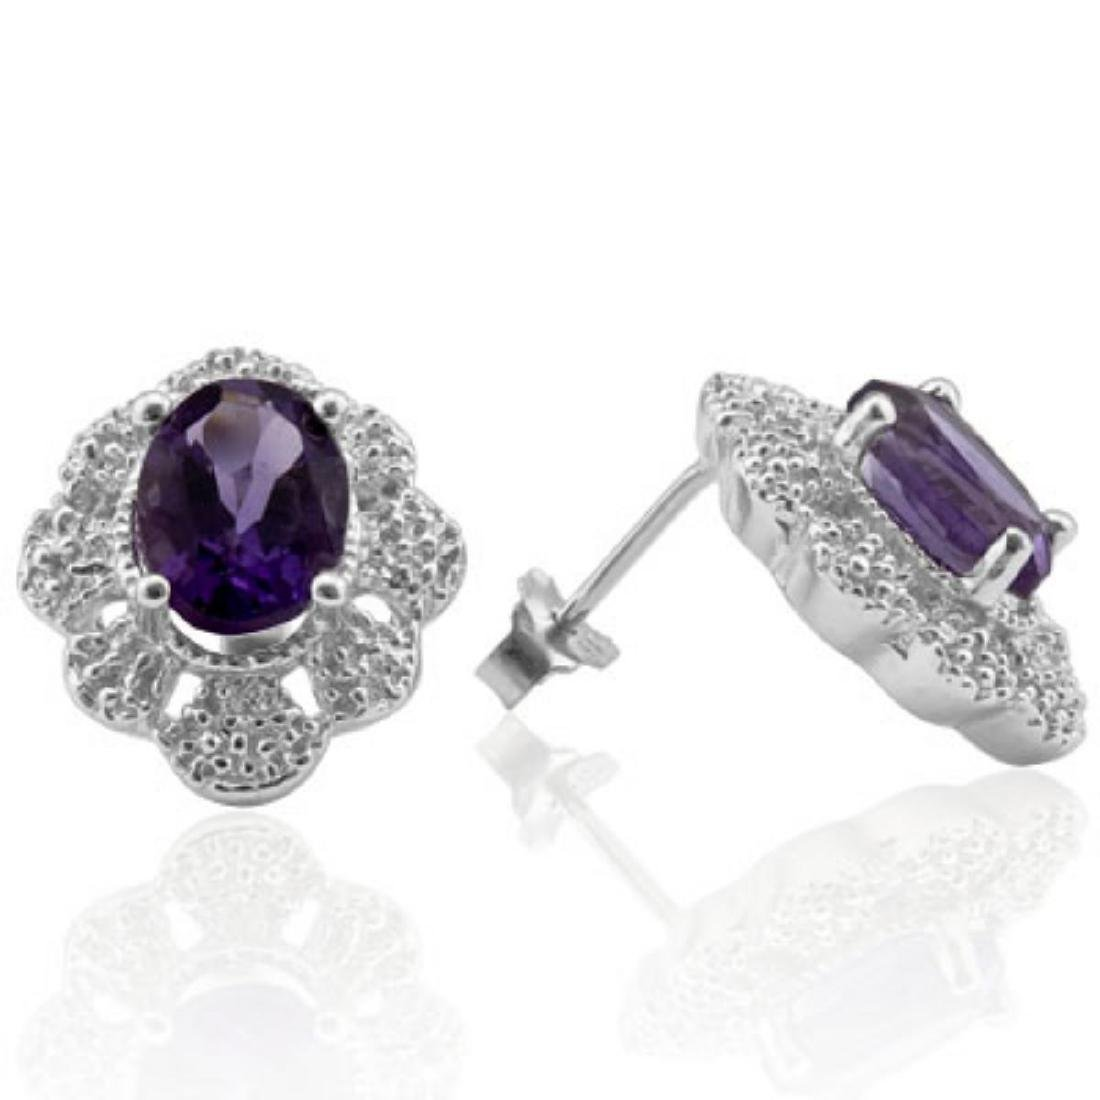 Natural Amethyst & Diamond 2.36 carats Earrings - 2